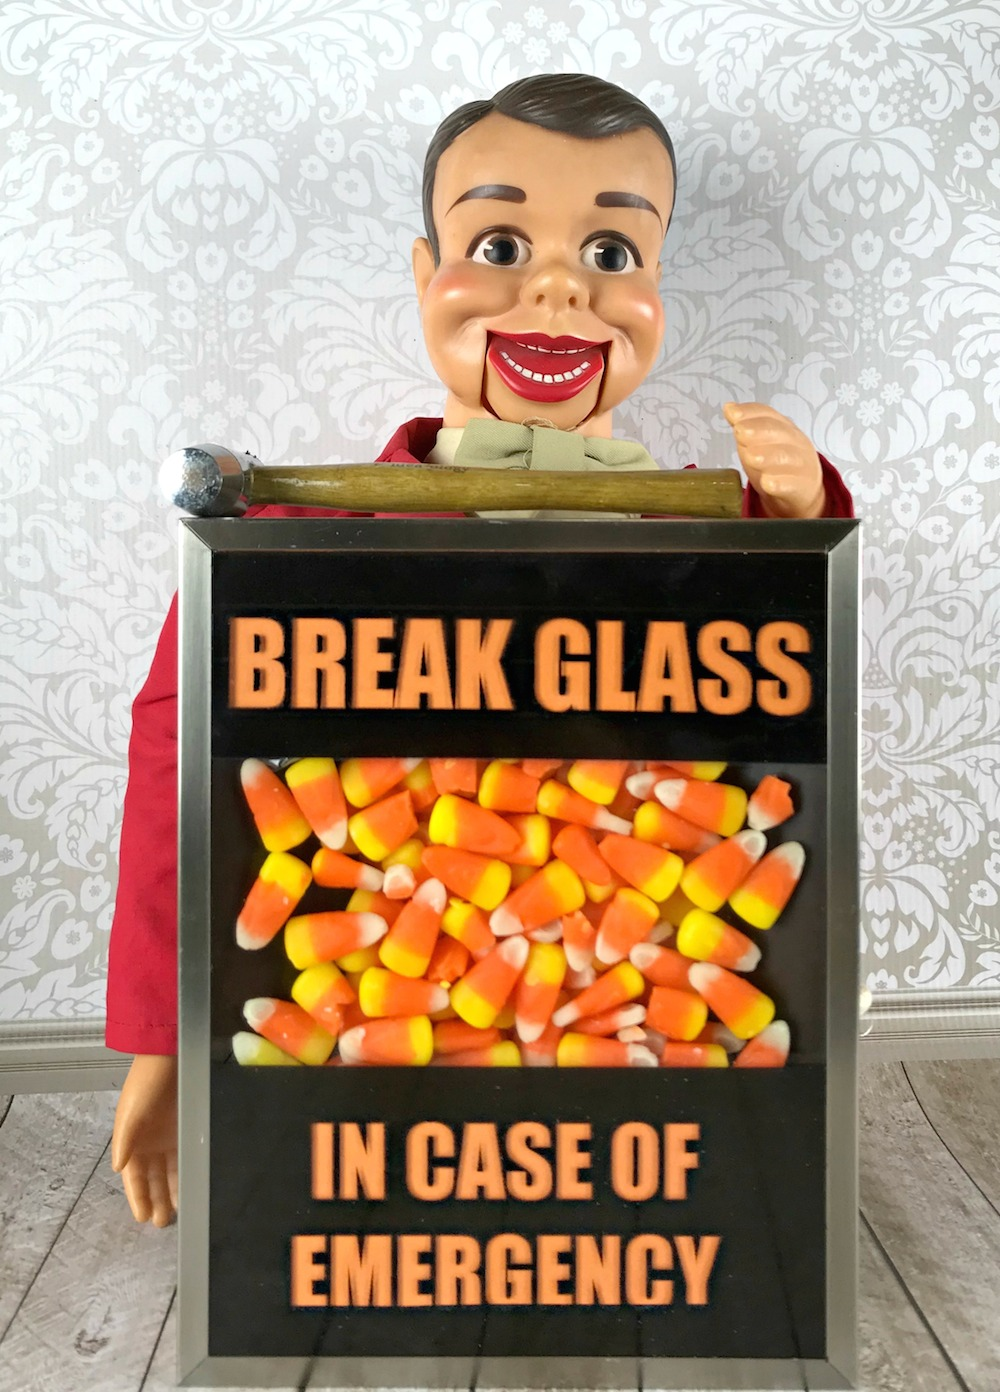 photo regarding In Case of Emergency Break Glass Printable referred to as sweet Archives - Morenas Corner